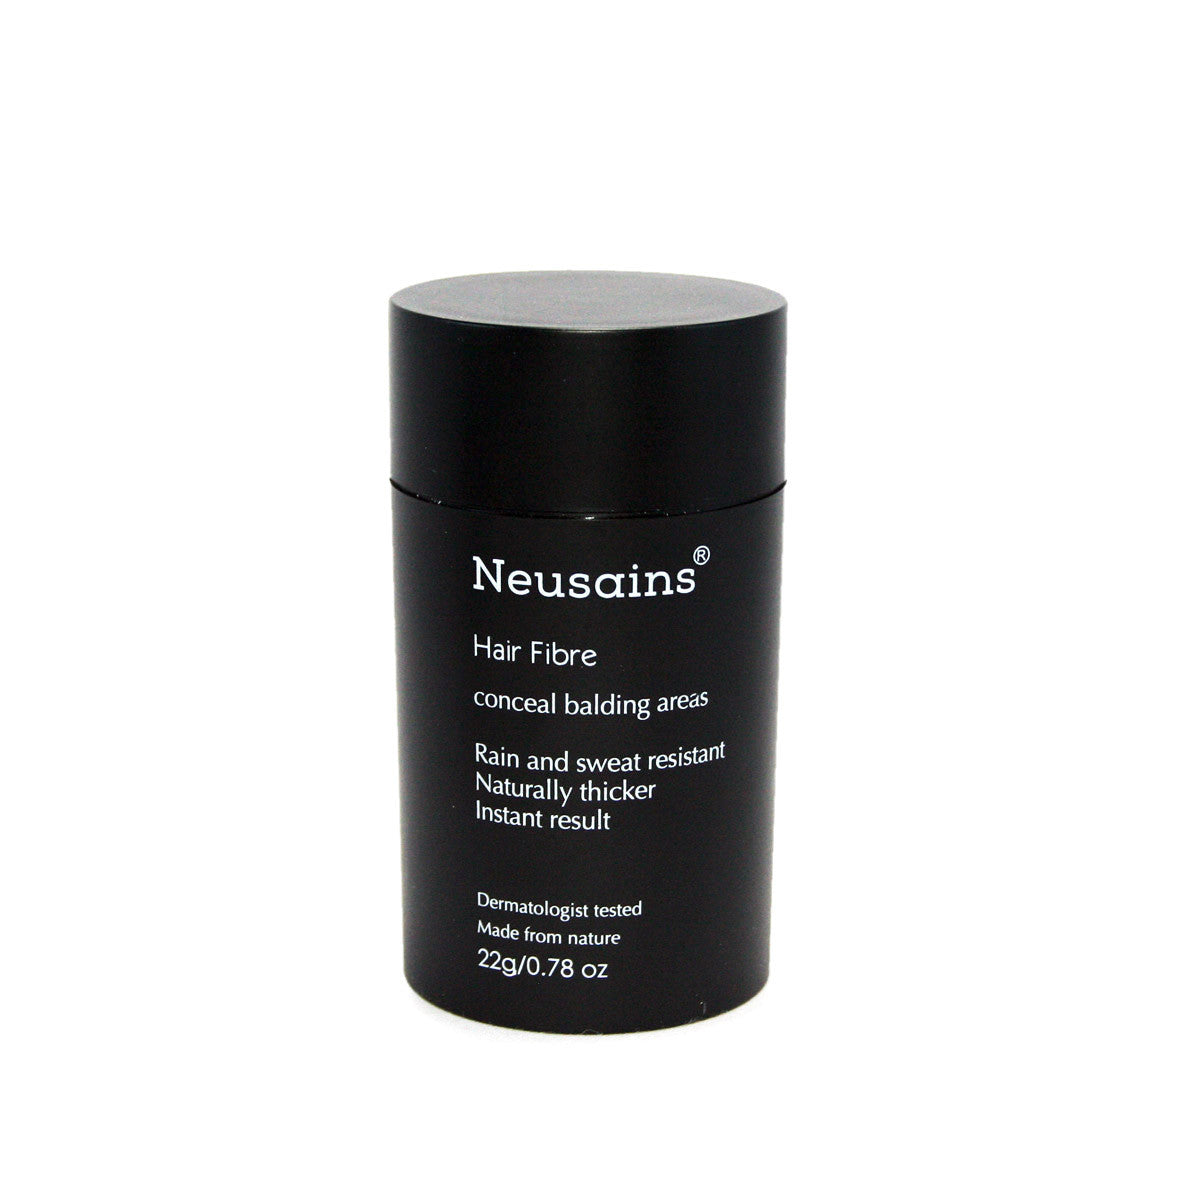 Neusains Regular 22g